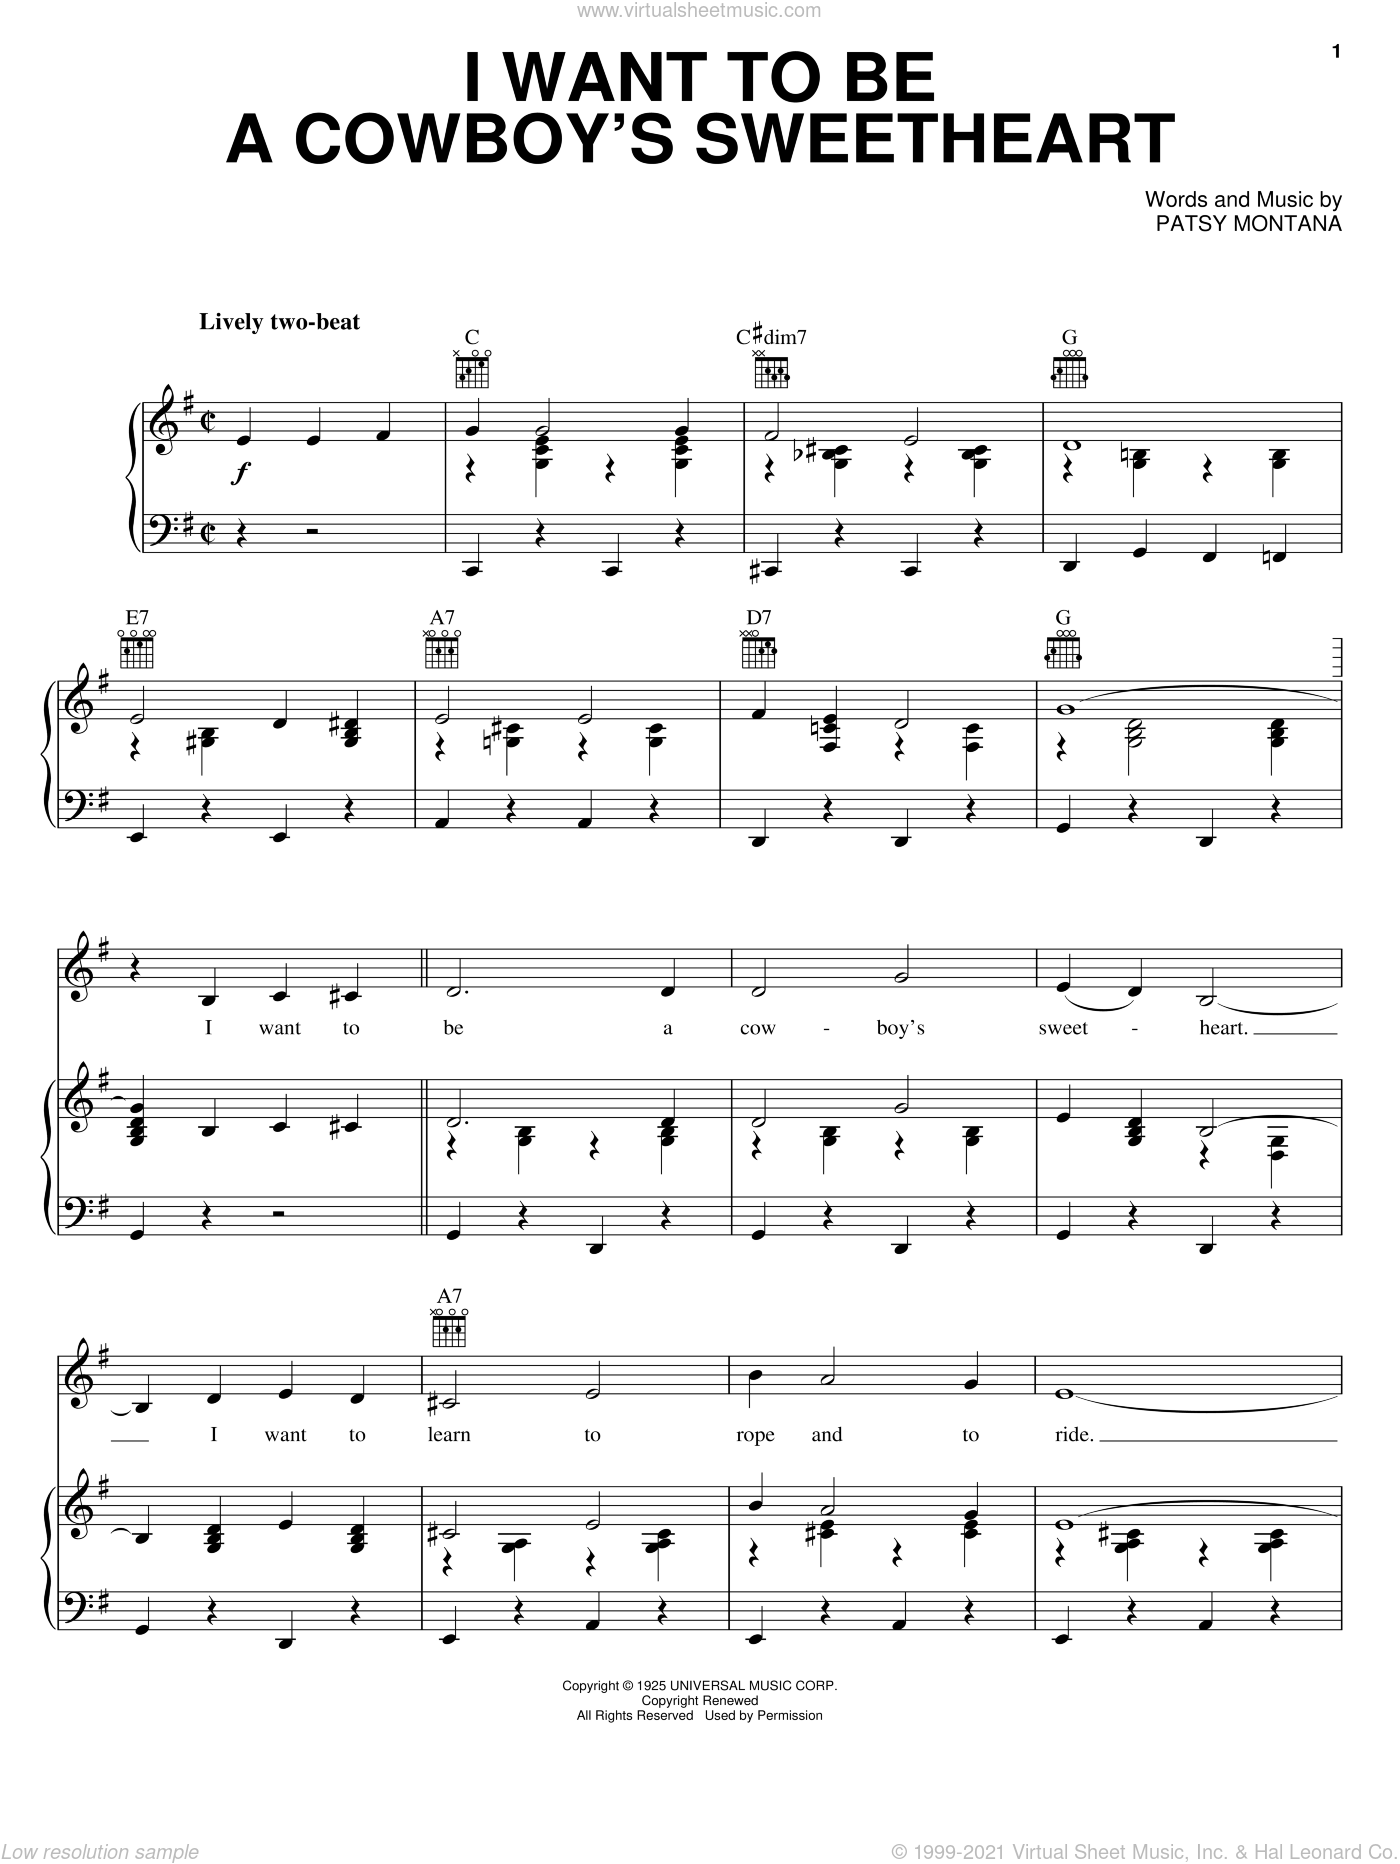 I Want To Be A Cowboy's Sweetheart sheet music for voice, piano or guitar by Patsy Montana, LeAnn Rimes and Suzy Bogguss, intermediate skill level